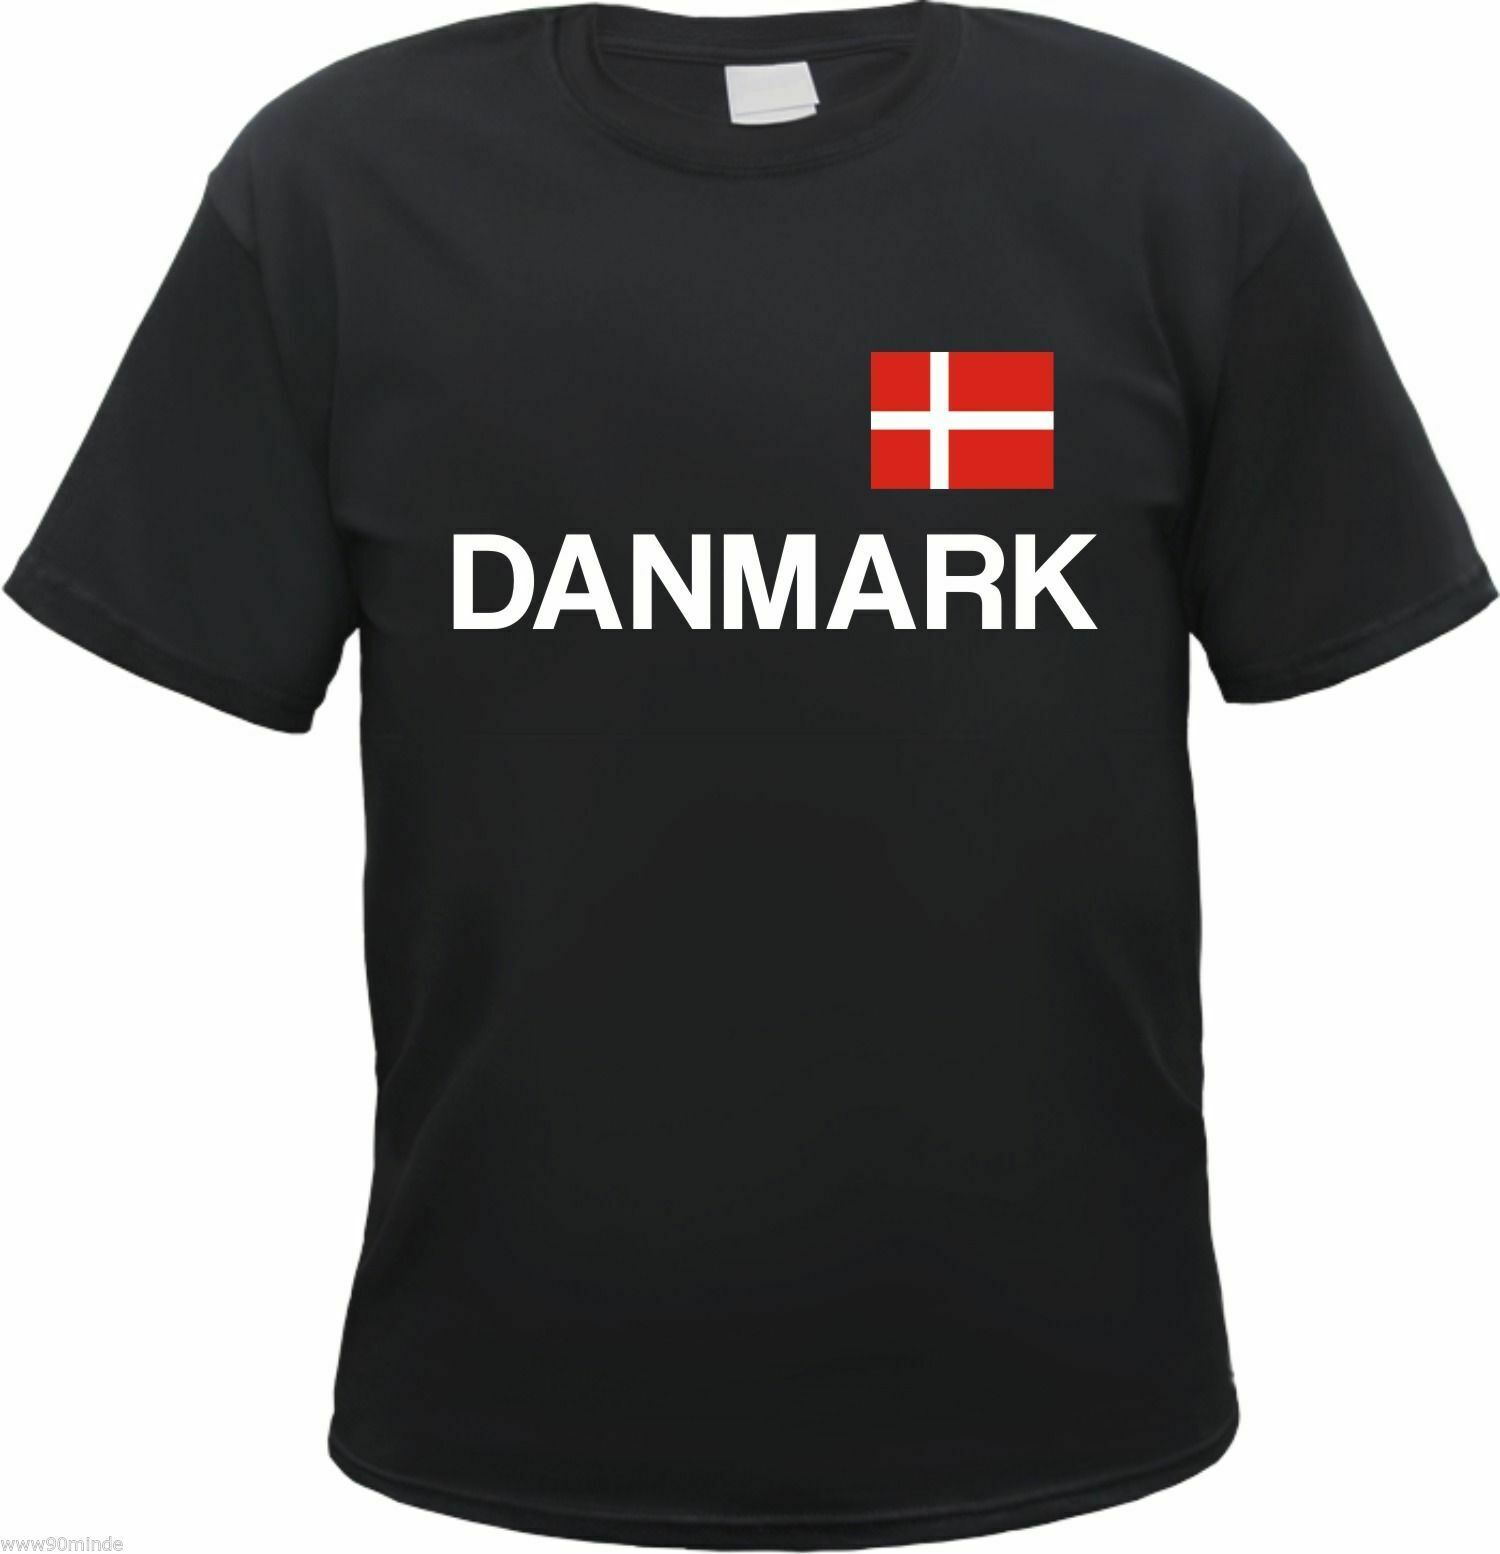 Danmark T-Shirt-Flag And Text Print-S To 3xl-Black-Denmark Holiday- Show Original Title Long Sleeve Hoddies Unisex Hoddie Short